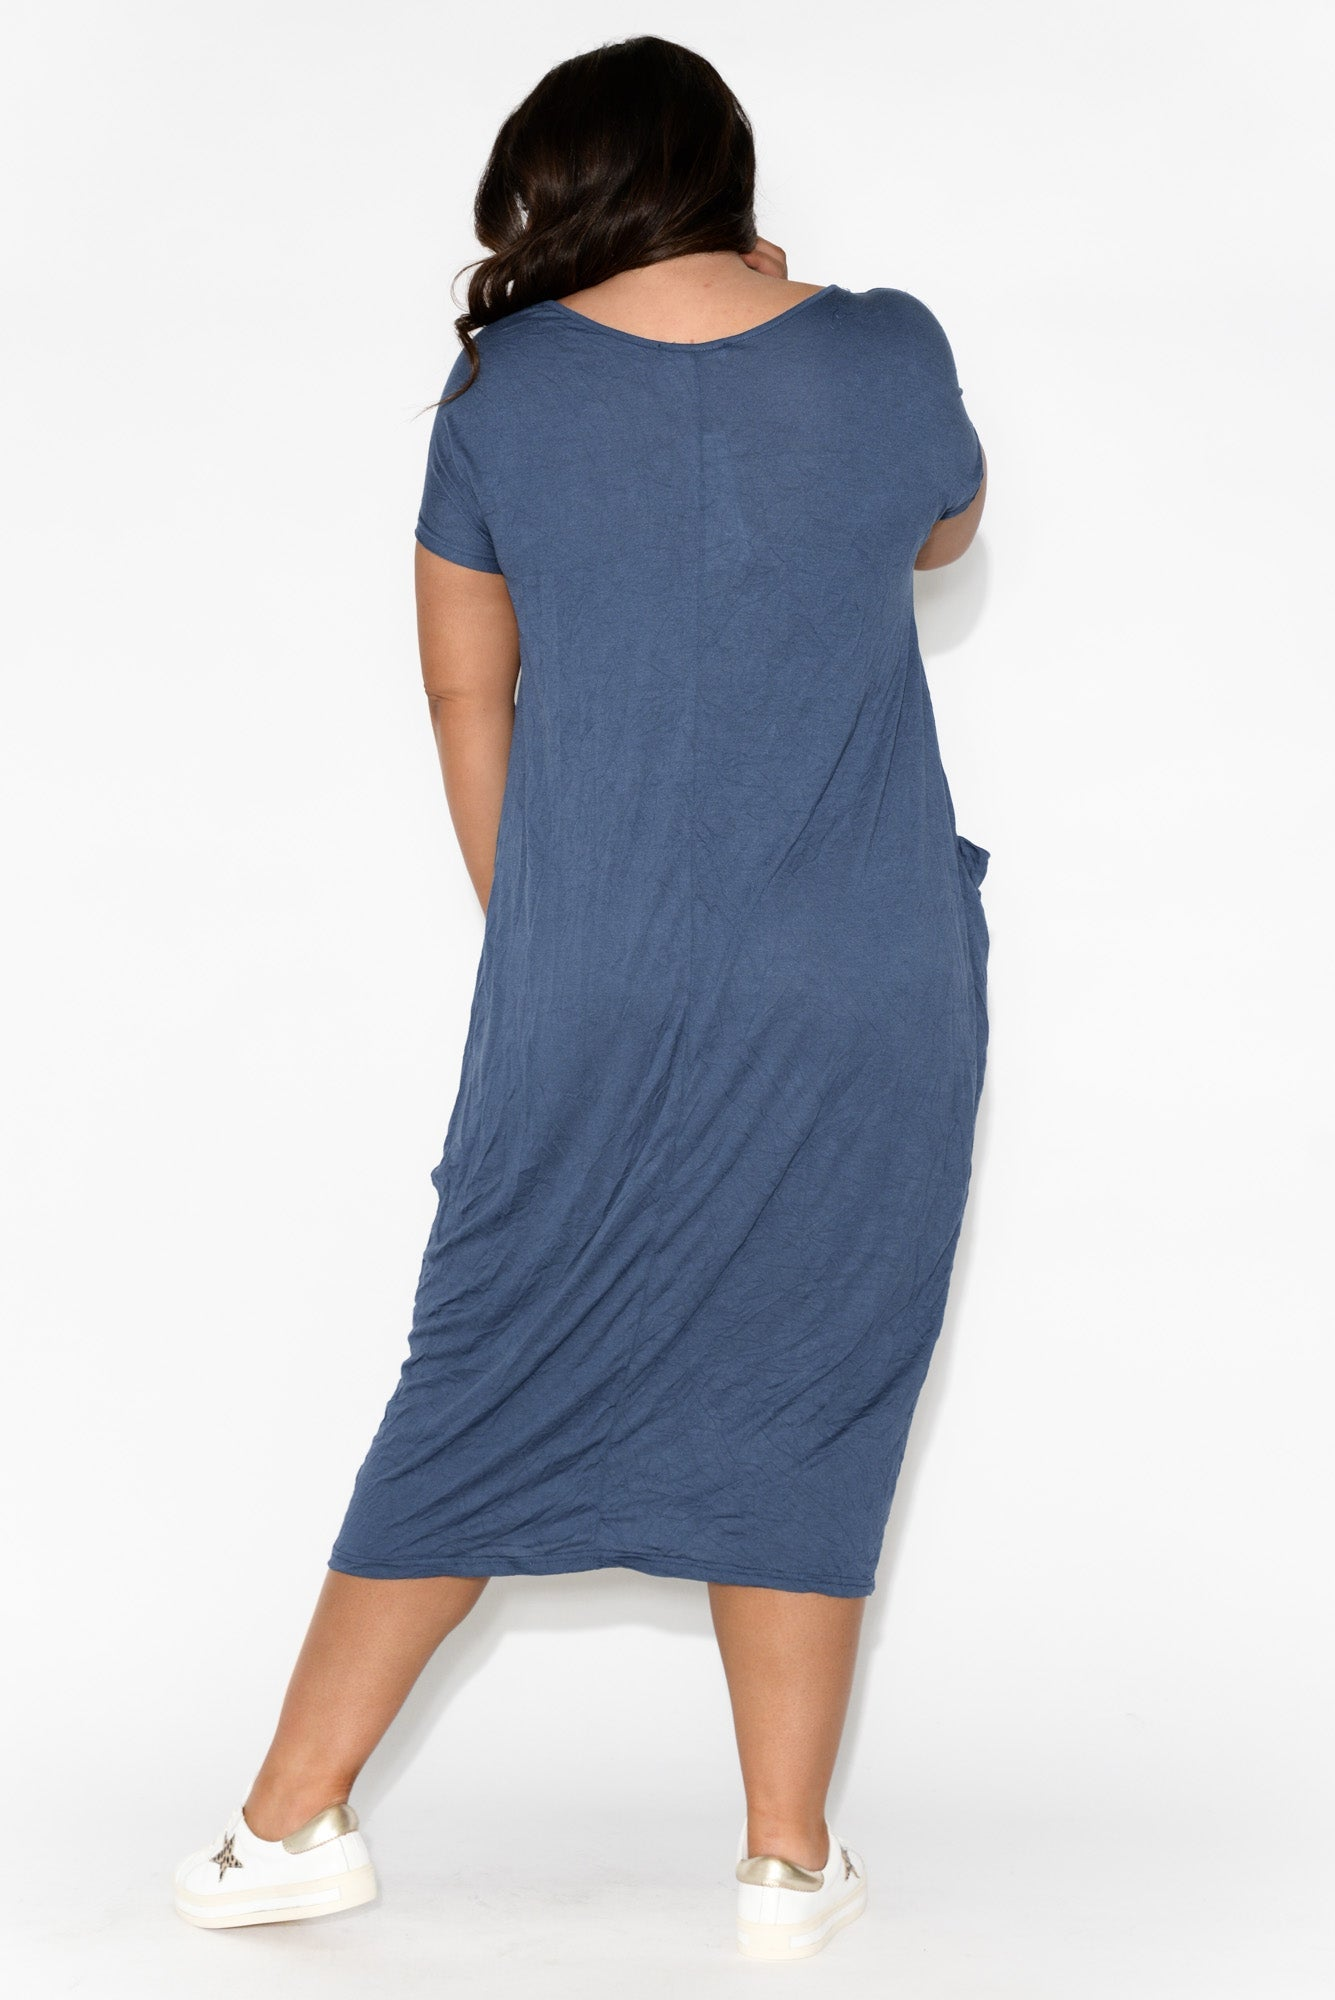 Blue Pocket Cotton Draped Dress